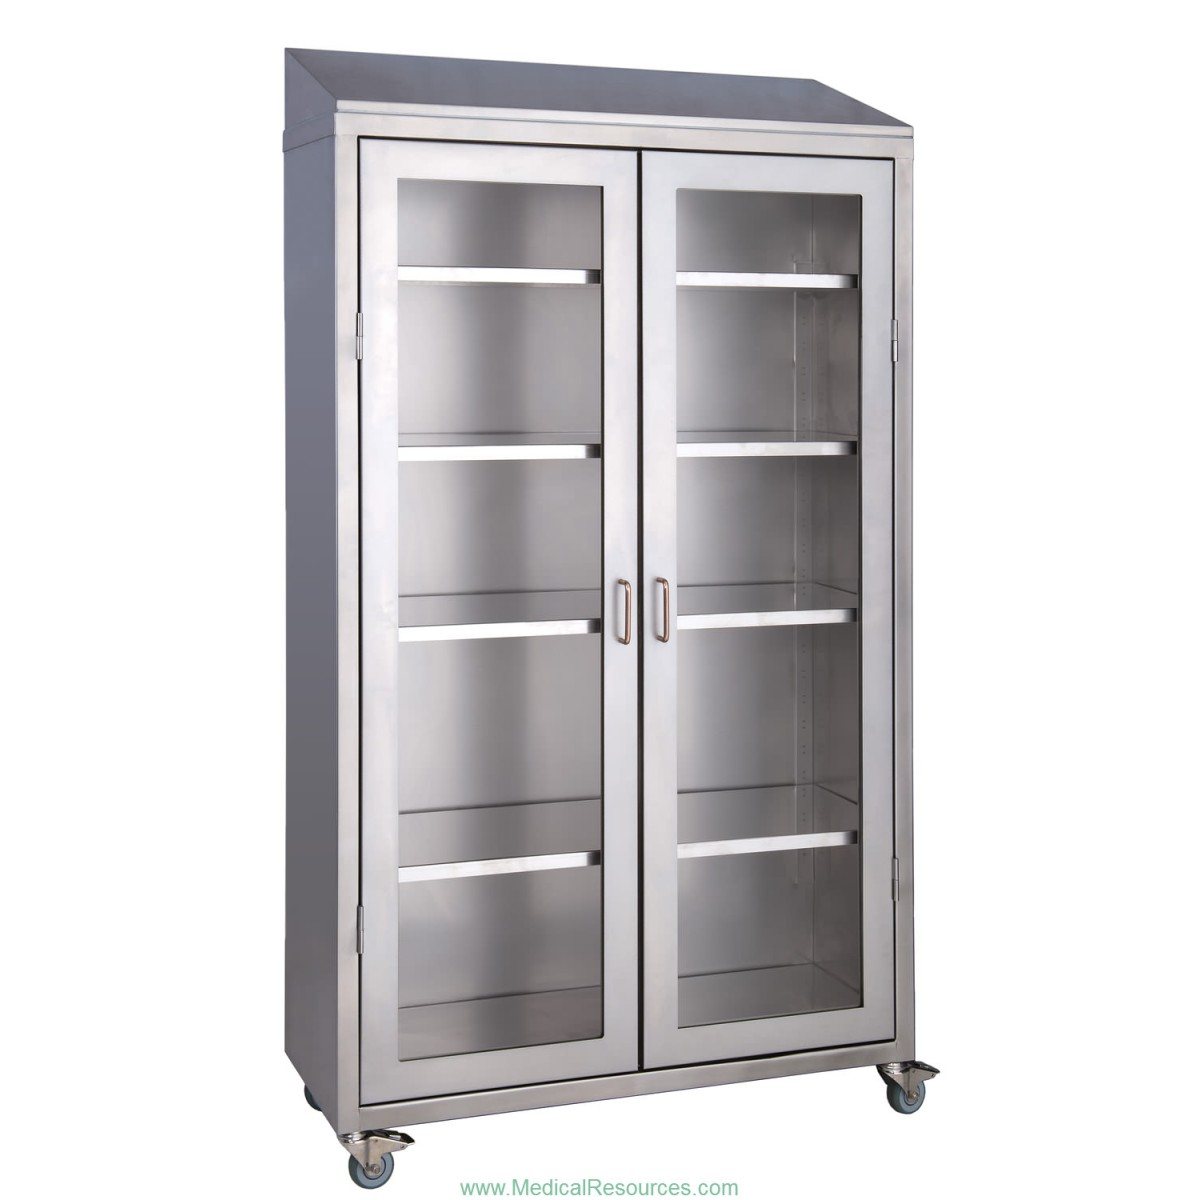 medwurx_mobile_stainless_steel_instrument_supply_cabinets